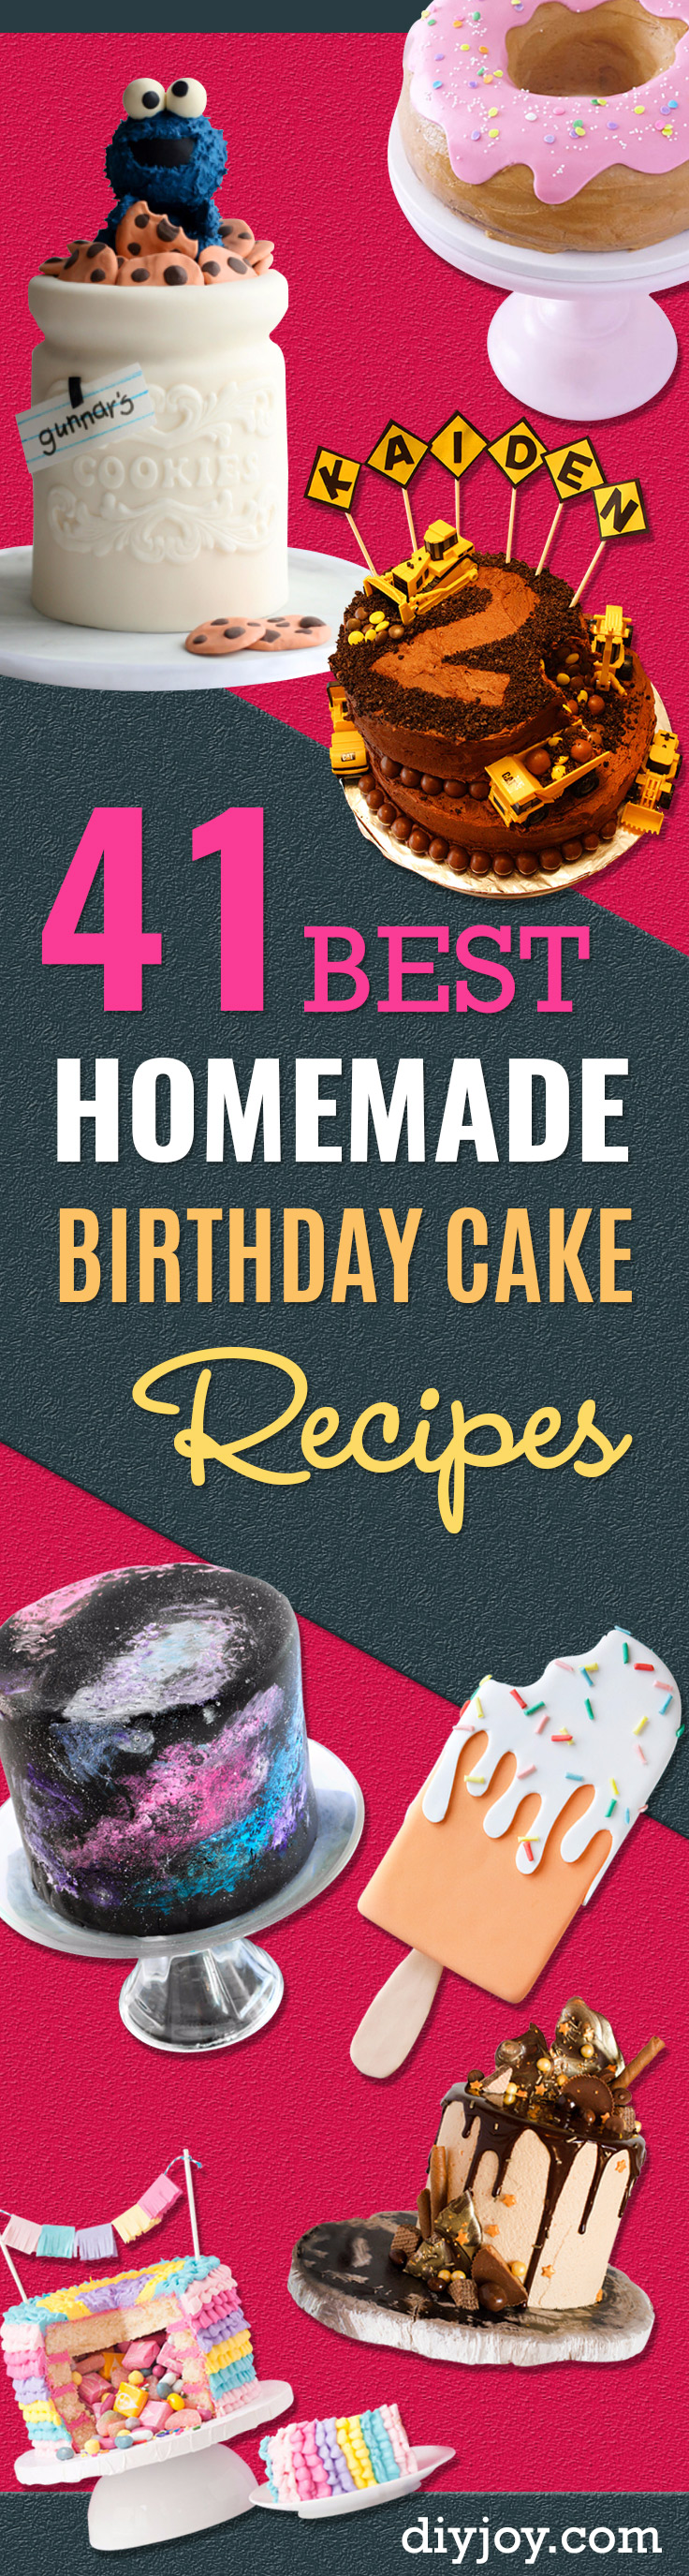 how to make a homemade birthday cake from scratch